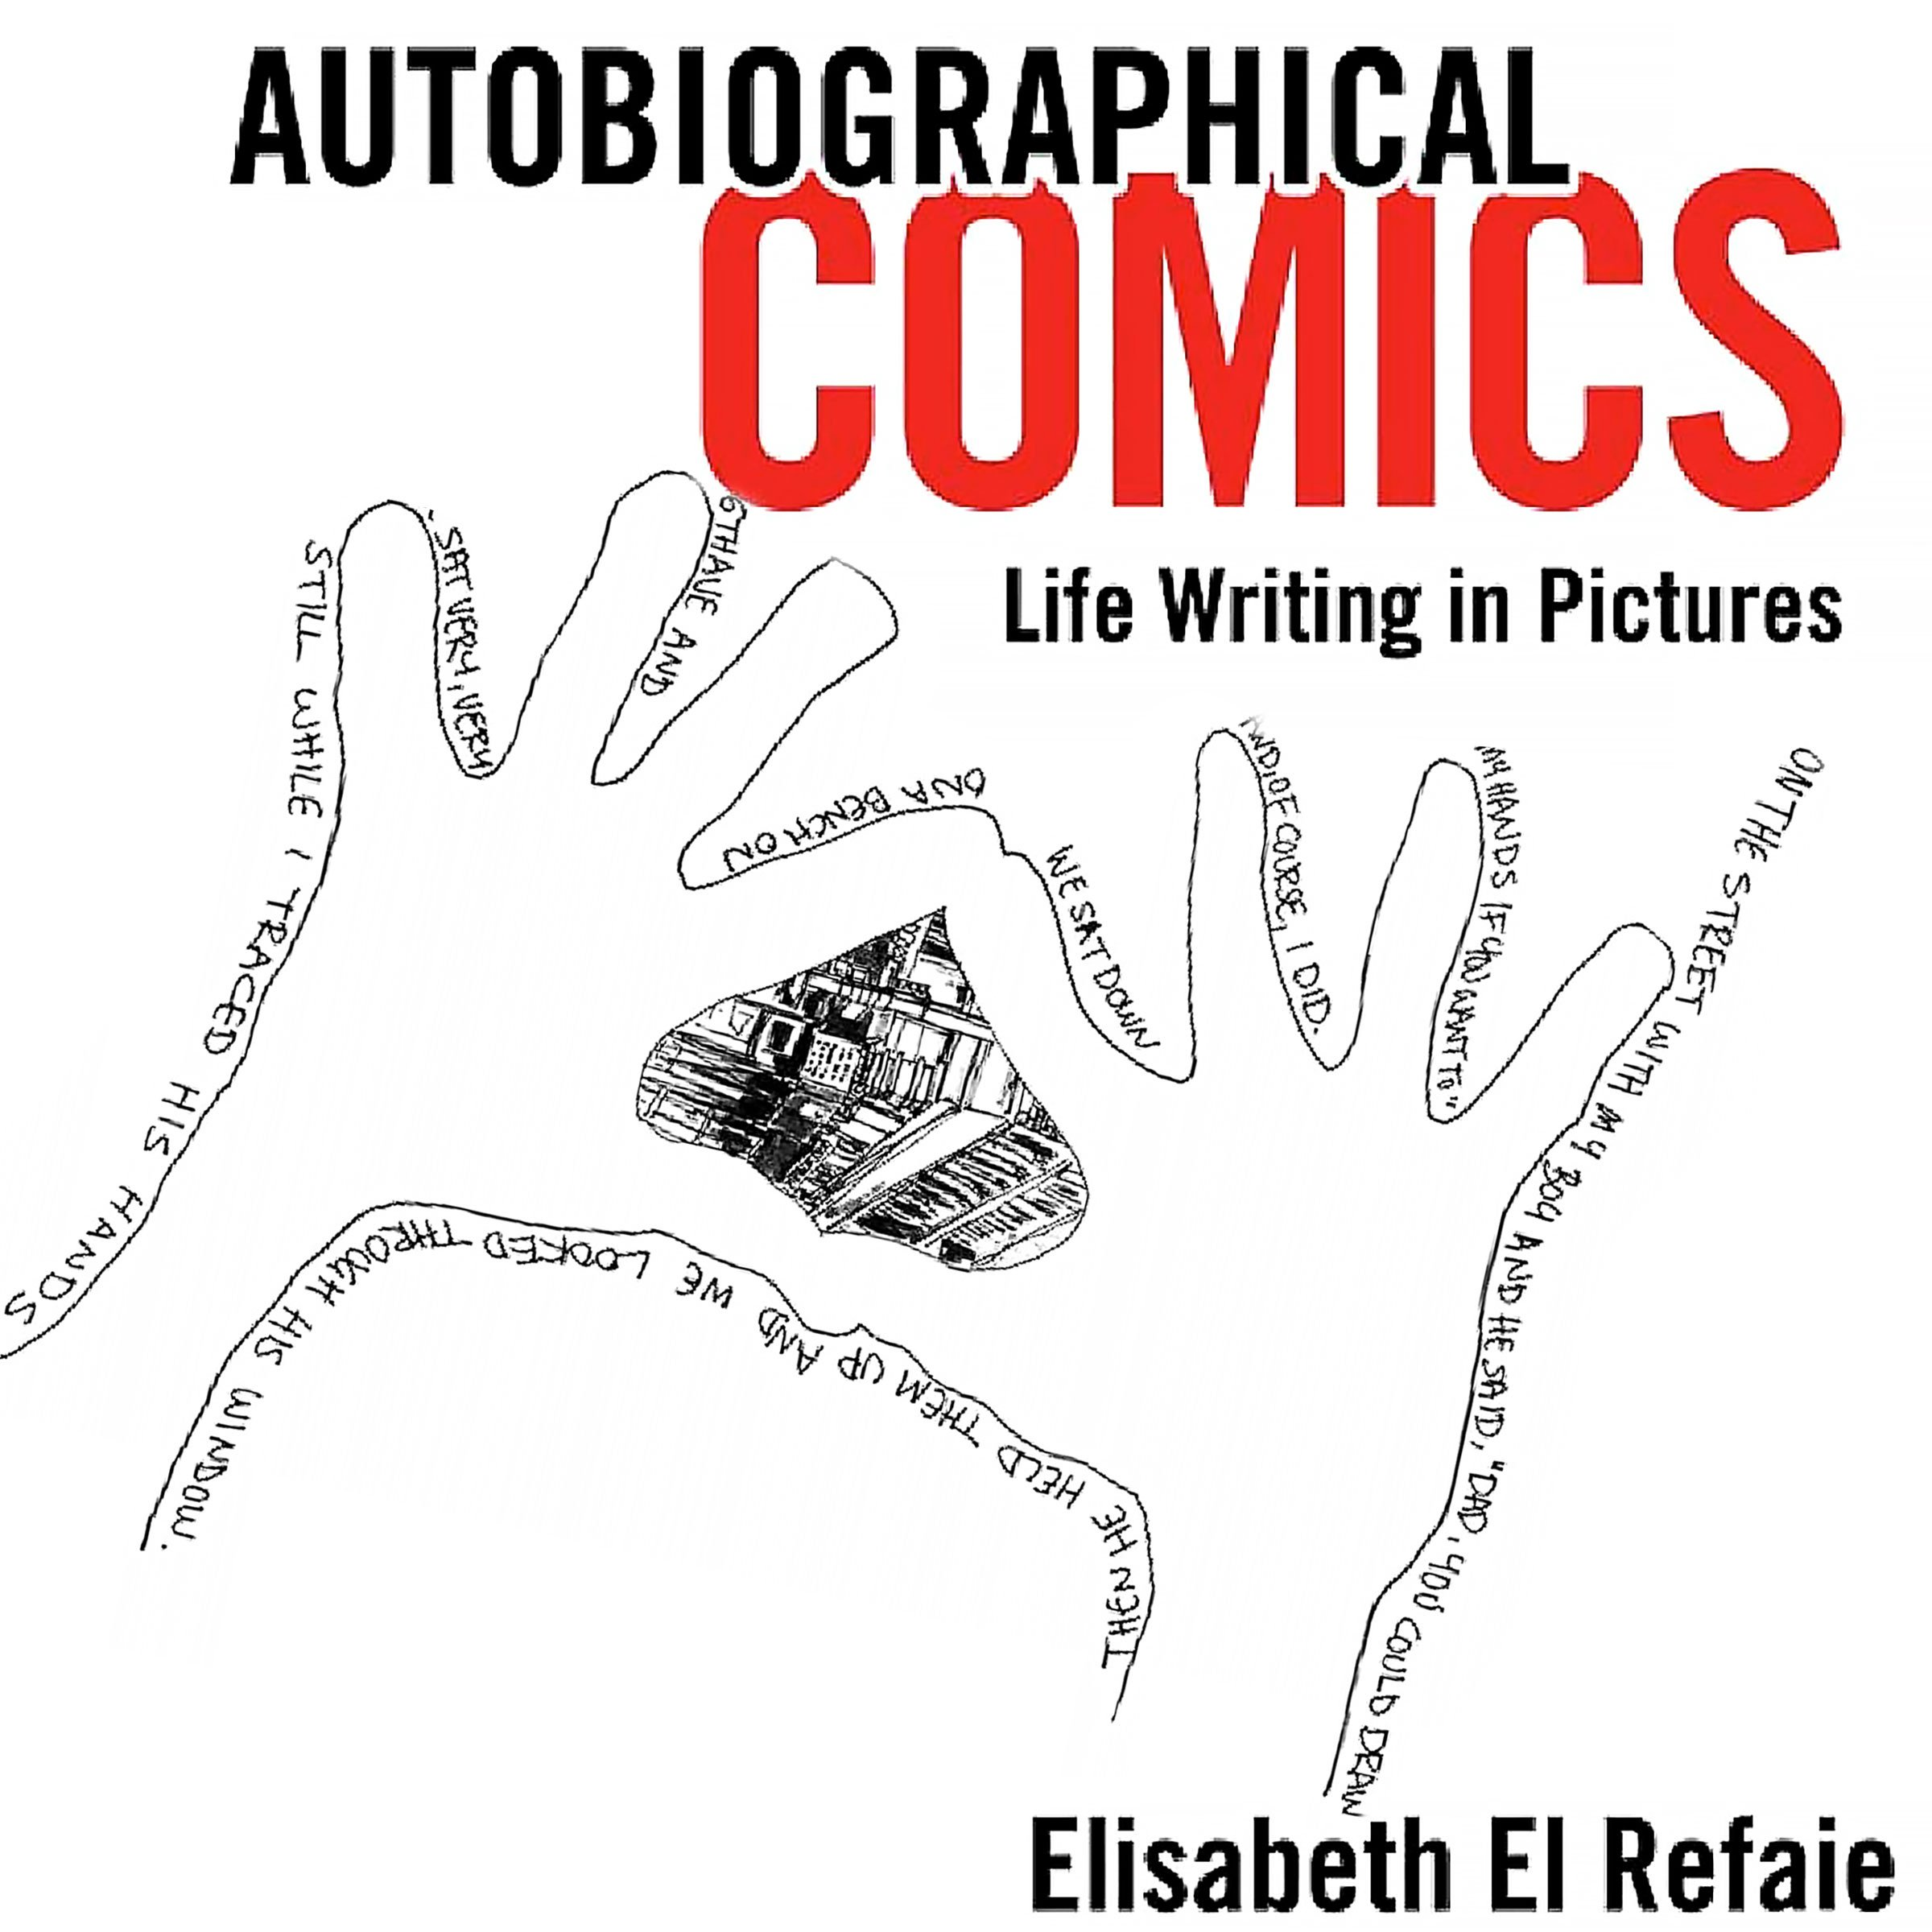 Autobiographical Comics: Life Writing in Pictures